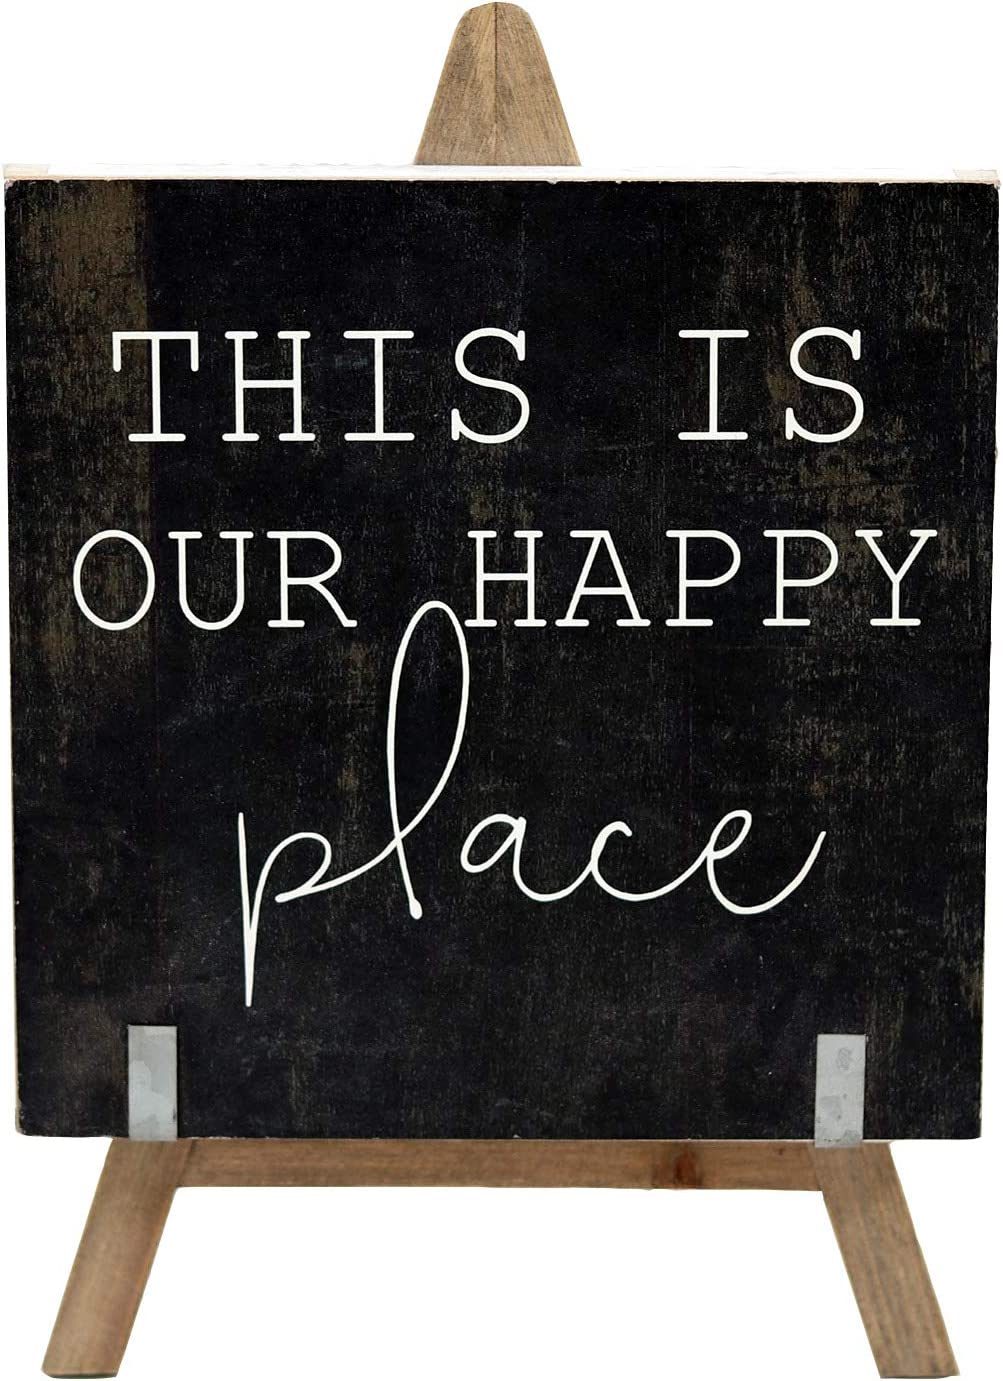 Parisloft This is Our Happy Place Wooden A-Frame Freestanding Home Decor,Farmhouse Wood Signs | Vintage Decor for Tables, Wedding Decor, Table Top, Home and Kitchen (Black)